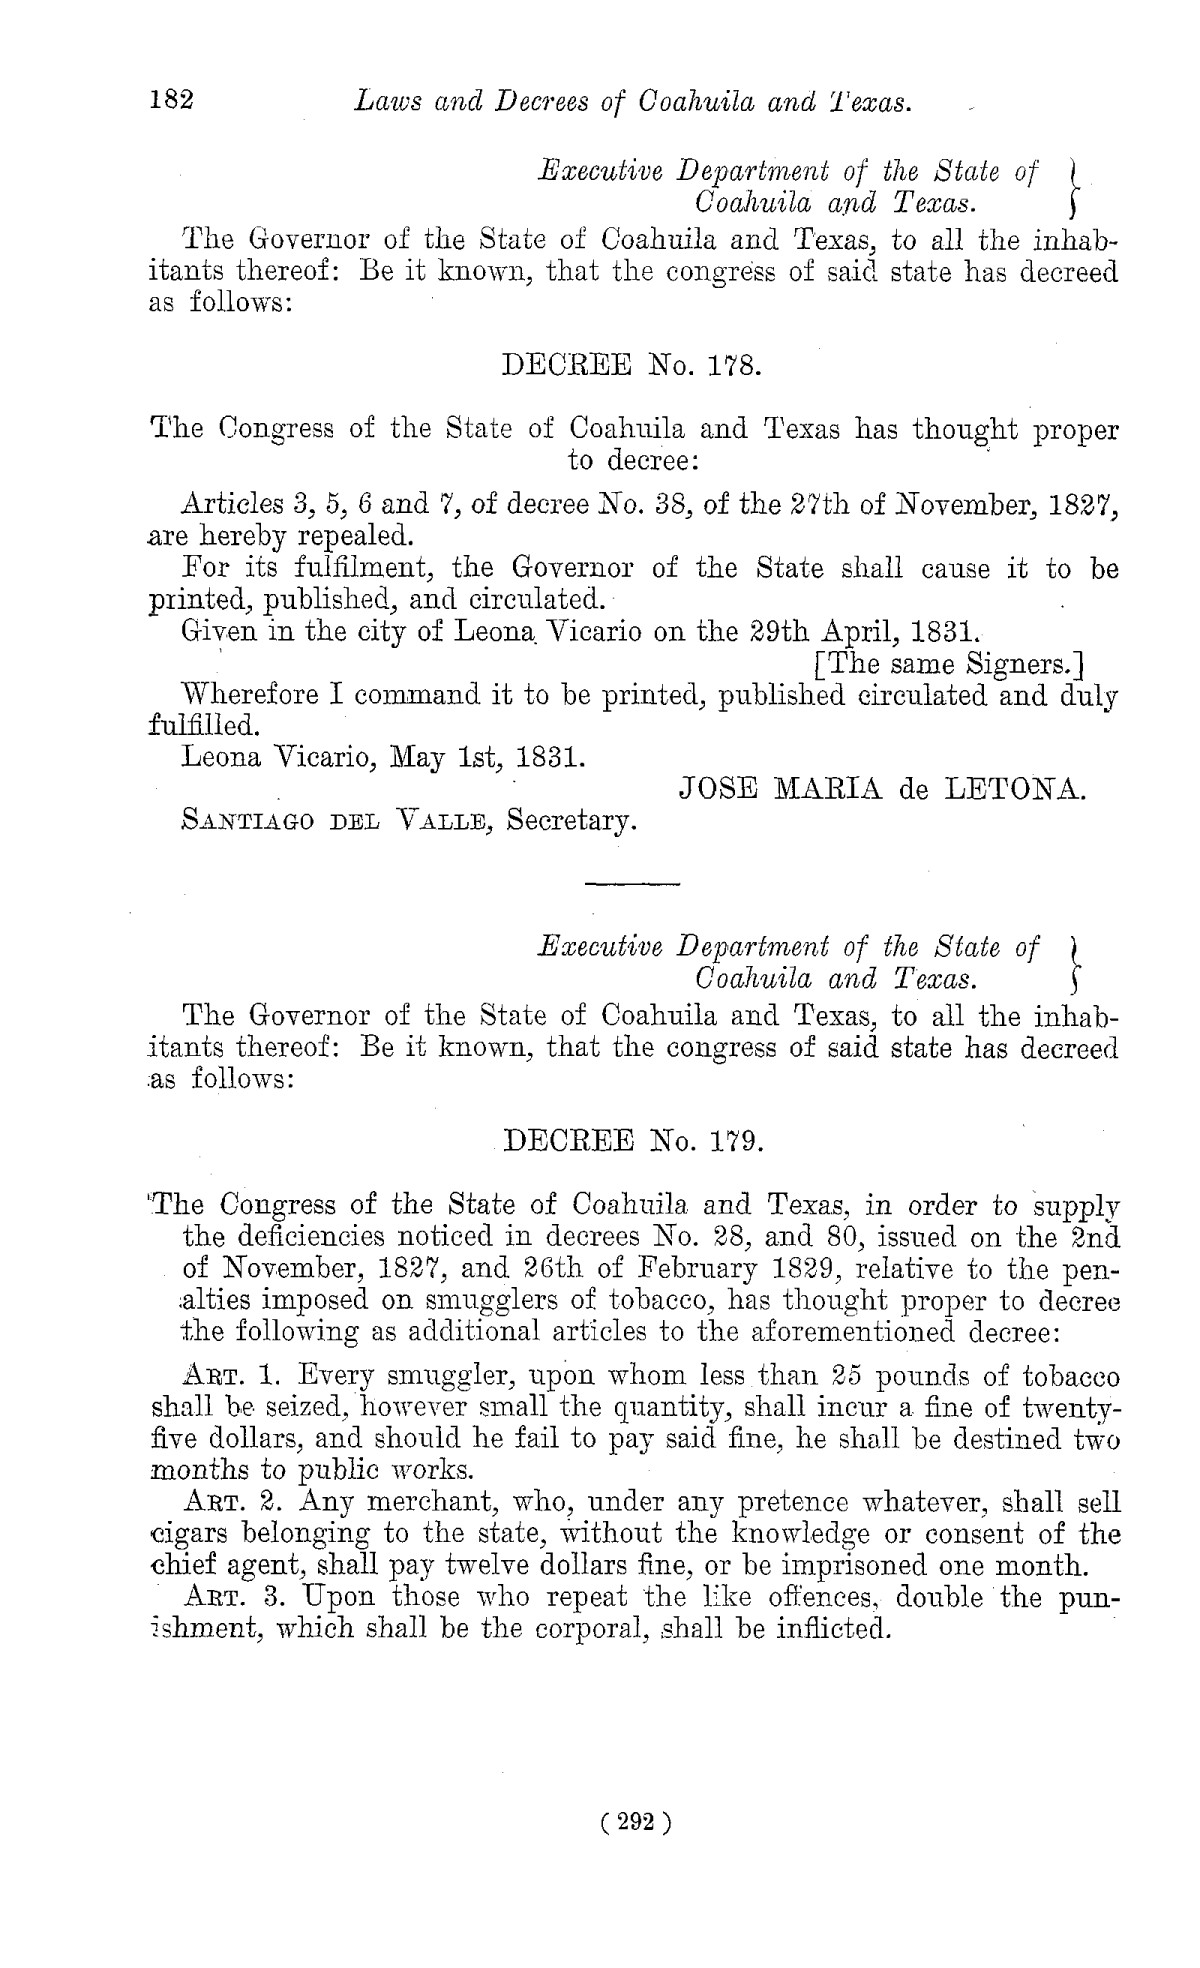 The Laws of Texas, 1822-1897 Volume 1                                                                                                      292